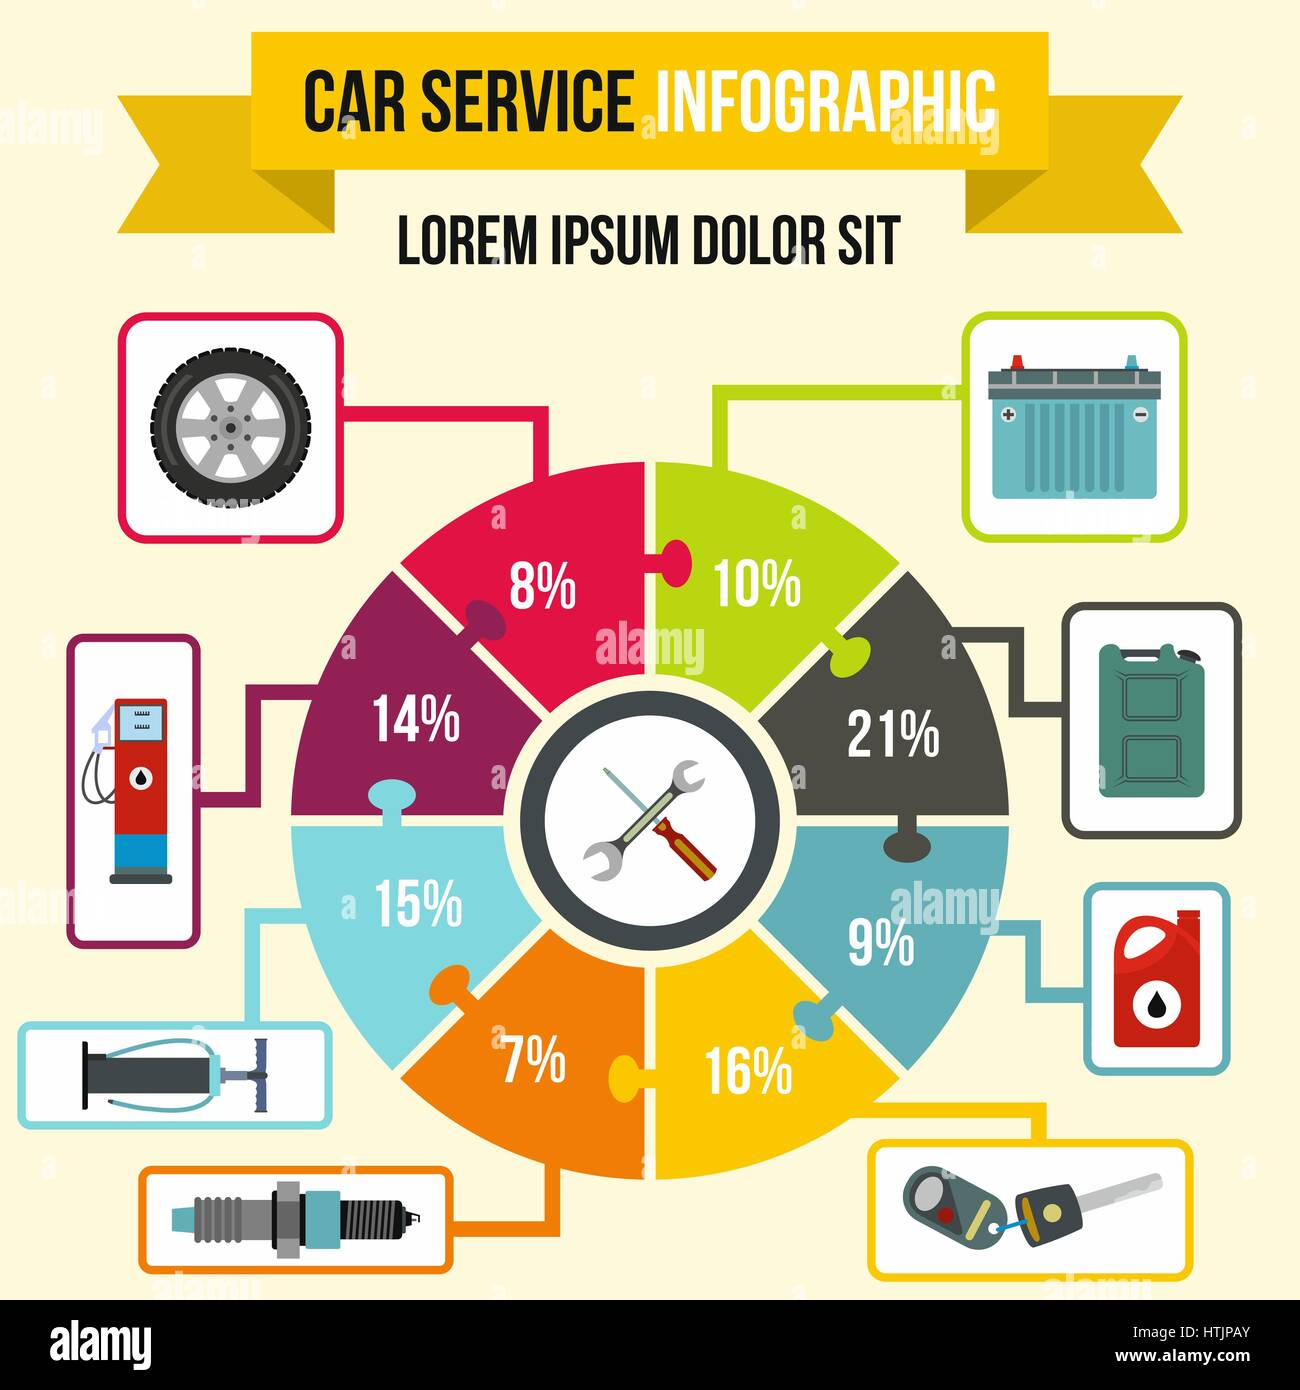 Car service Infographic, flat style - Stock Image